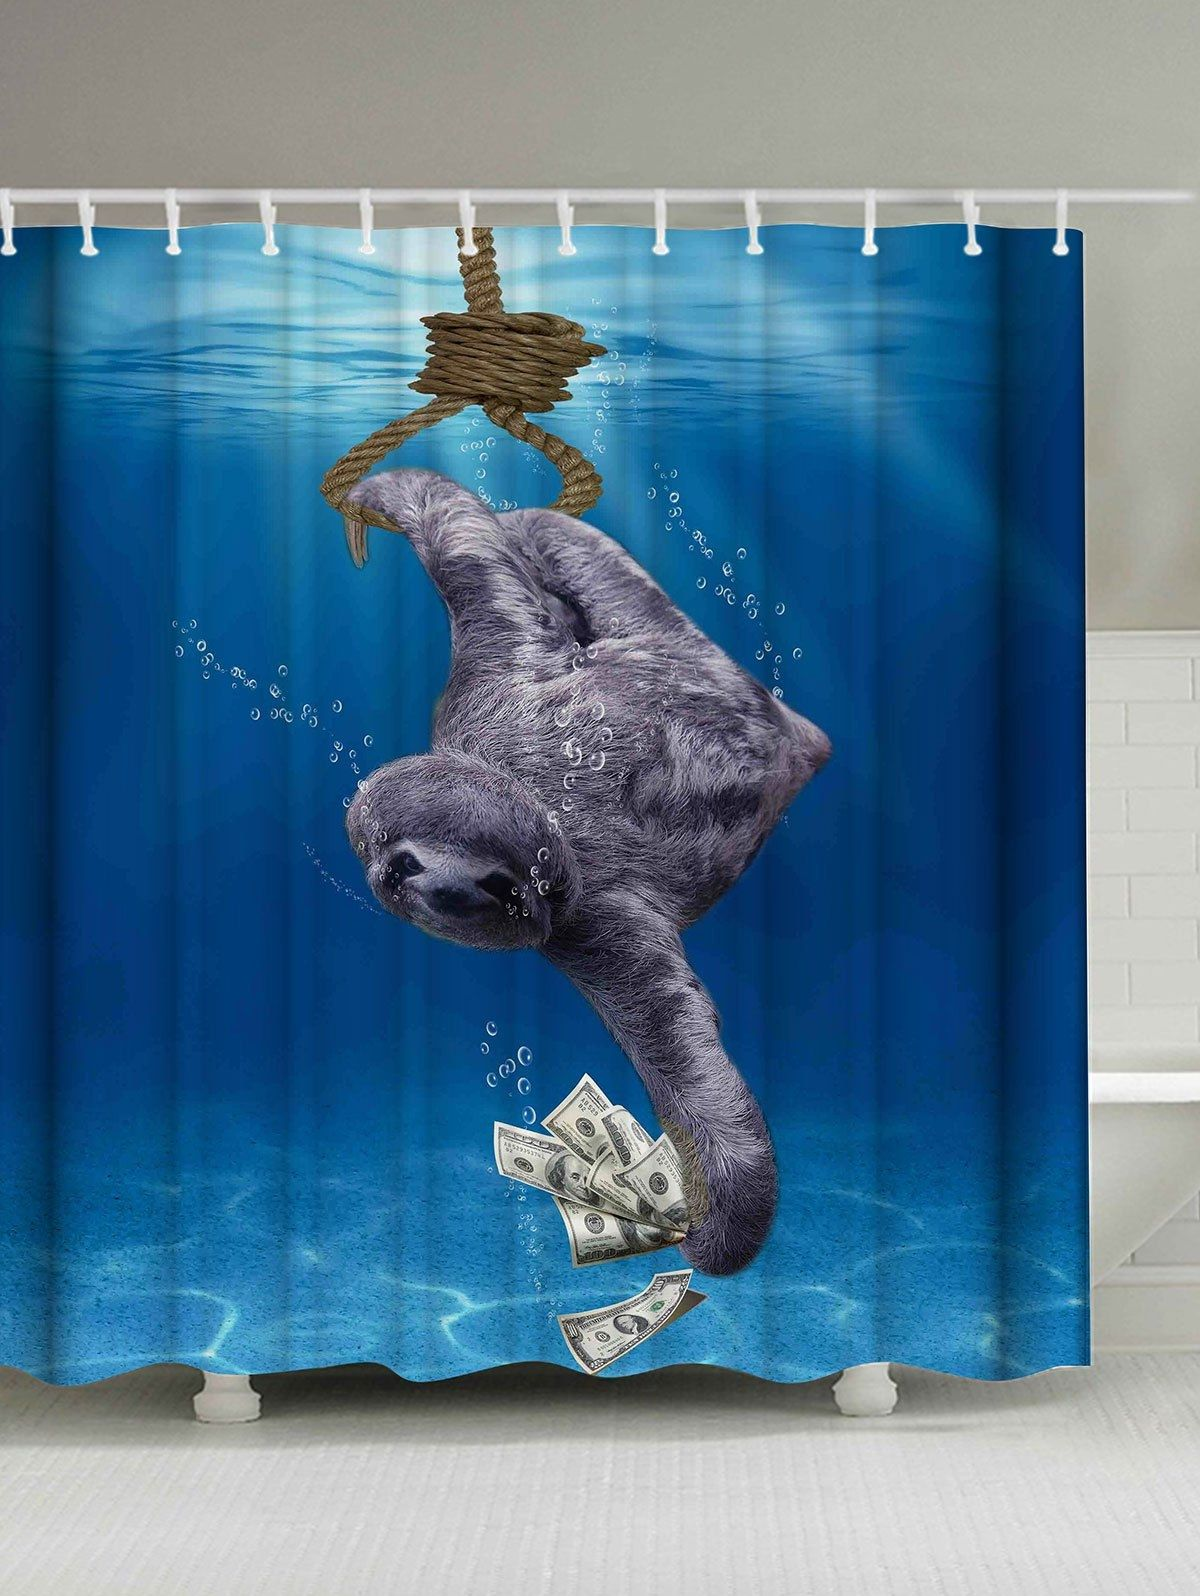 Blue Dolphin Shower Curtain Hooks